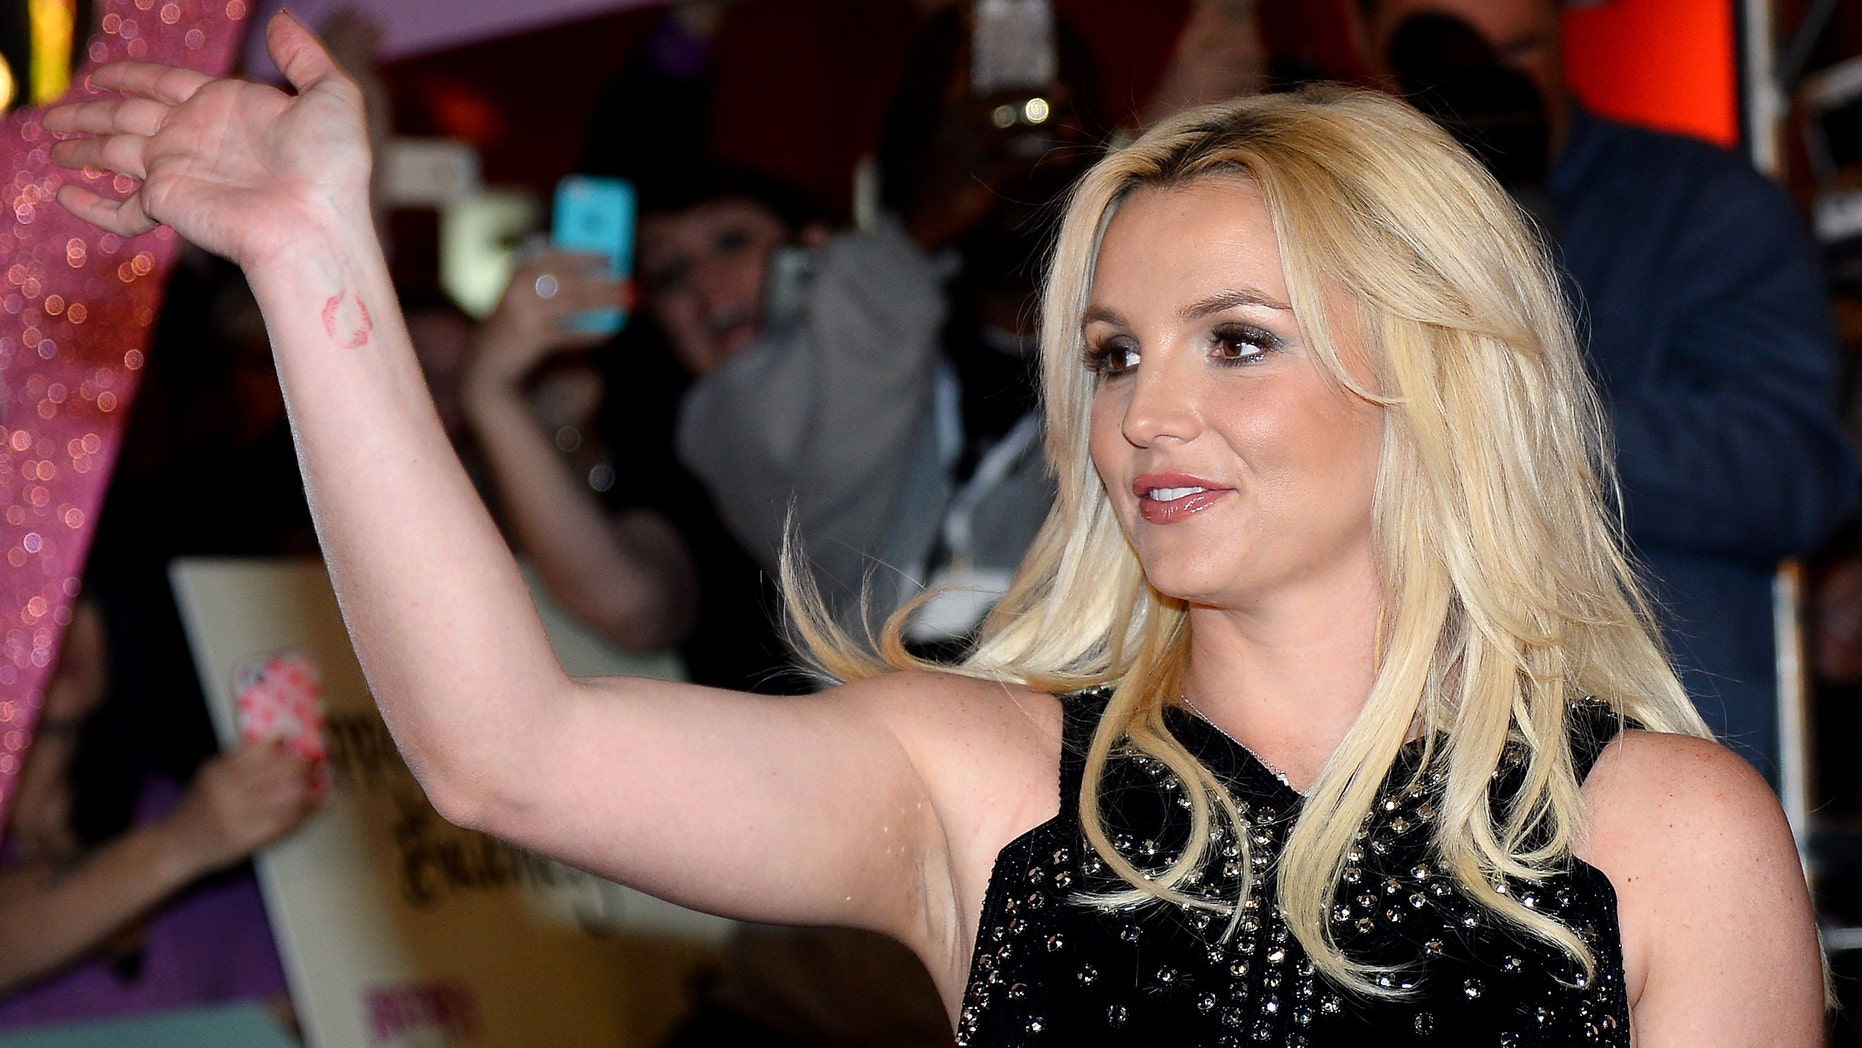 "LAS VEGAS, NV - DECEMBER 03:  Singer Britney Spears waves at a welcome ceremony as she celebrates the release of her new album ""Britney Jean"" and prepares for her two-year residency at Planet Hollywood Resort & Casino on December 3, 2013 in Las Vegas, Nevada. Spears' show ""Britney: Piece of Me"" will debut at the resort on December 27, 2013.  (Photo by Ethan Miller/Getty Images)"